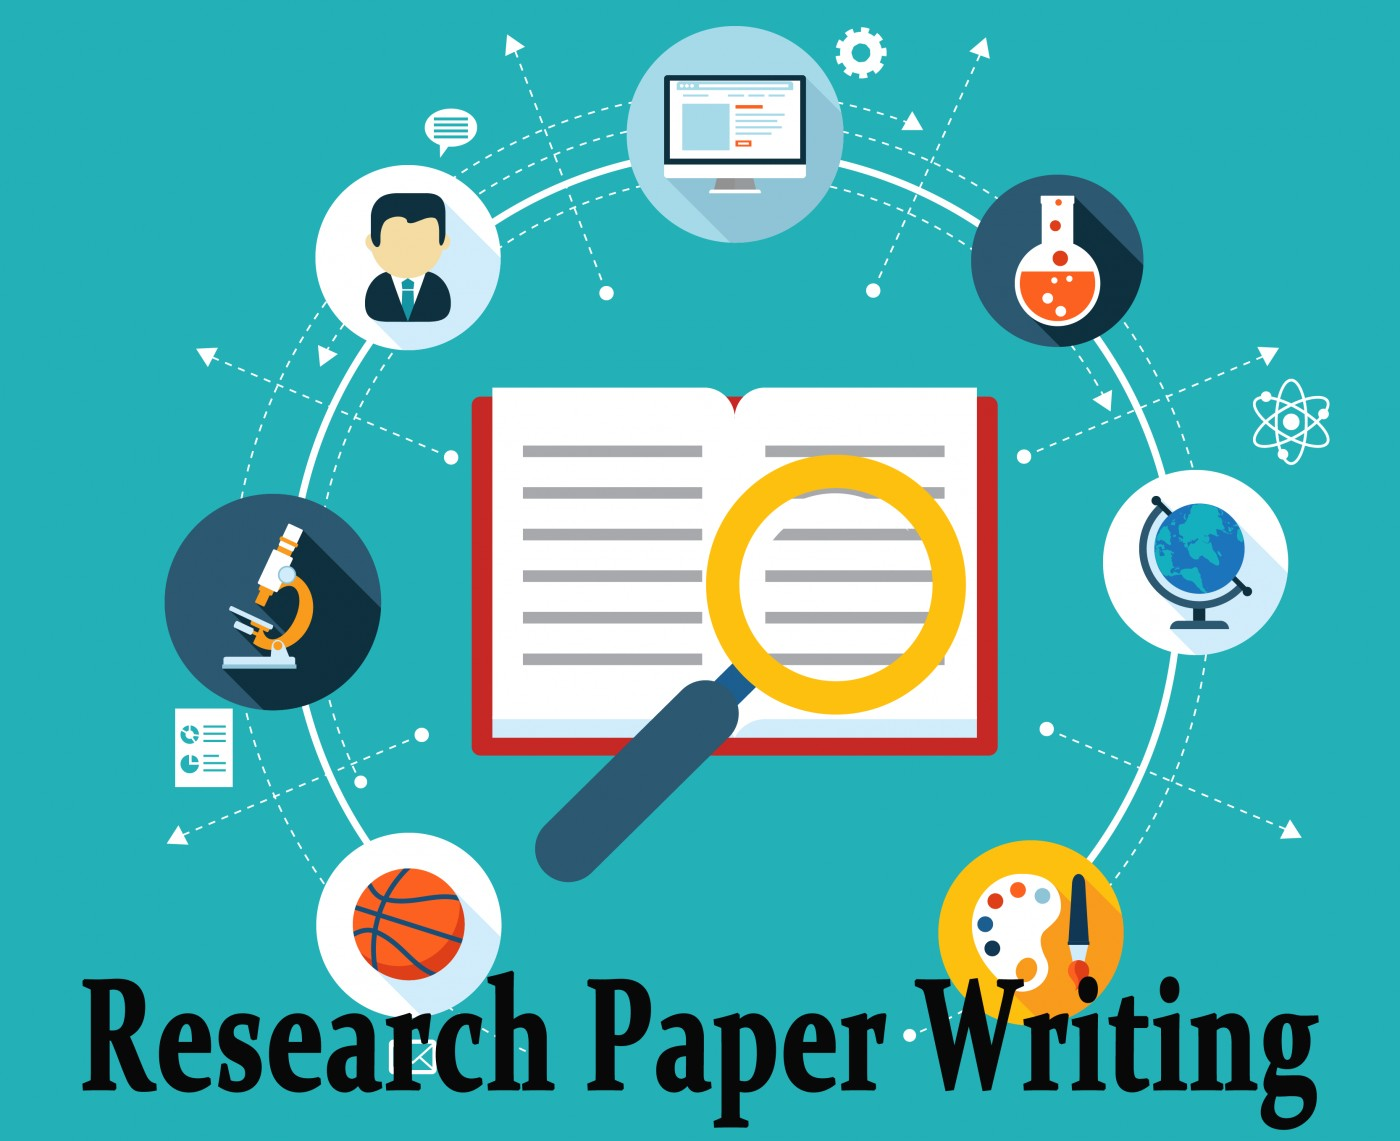 009 Writing The Research Paper 503 Effective Phenomenal Papers A Complete Guide 15th Edition Pdf Abstract Ppt Biomedical 1400